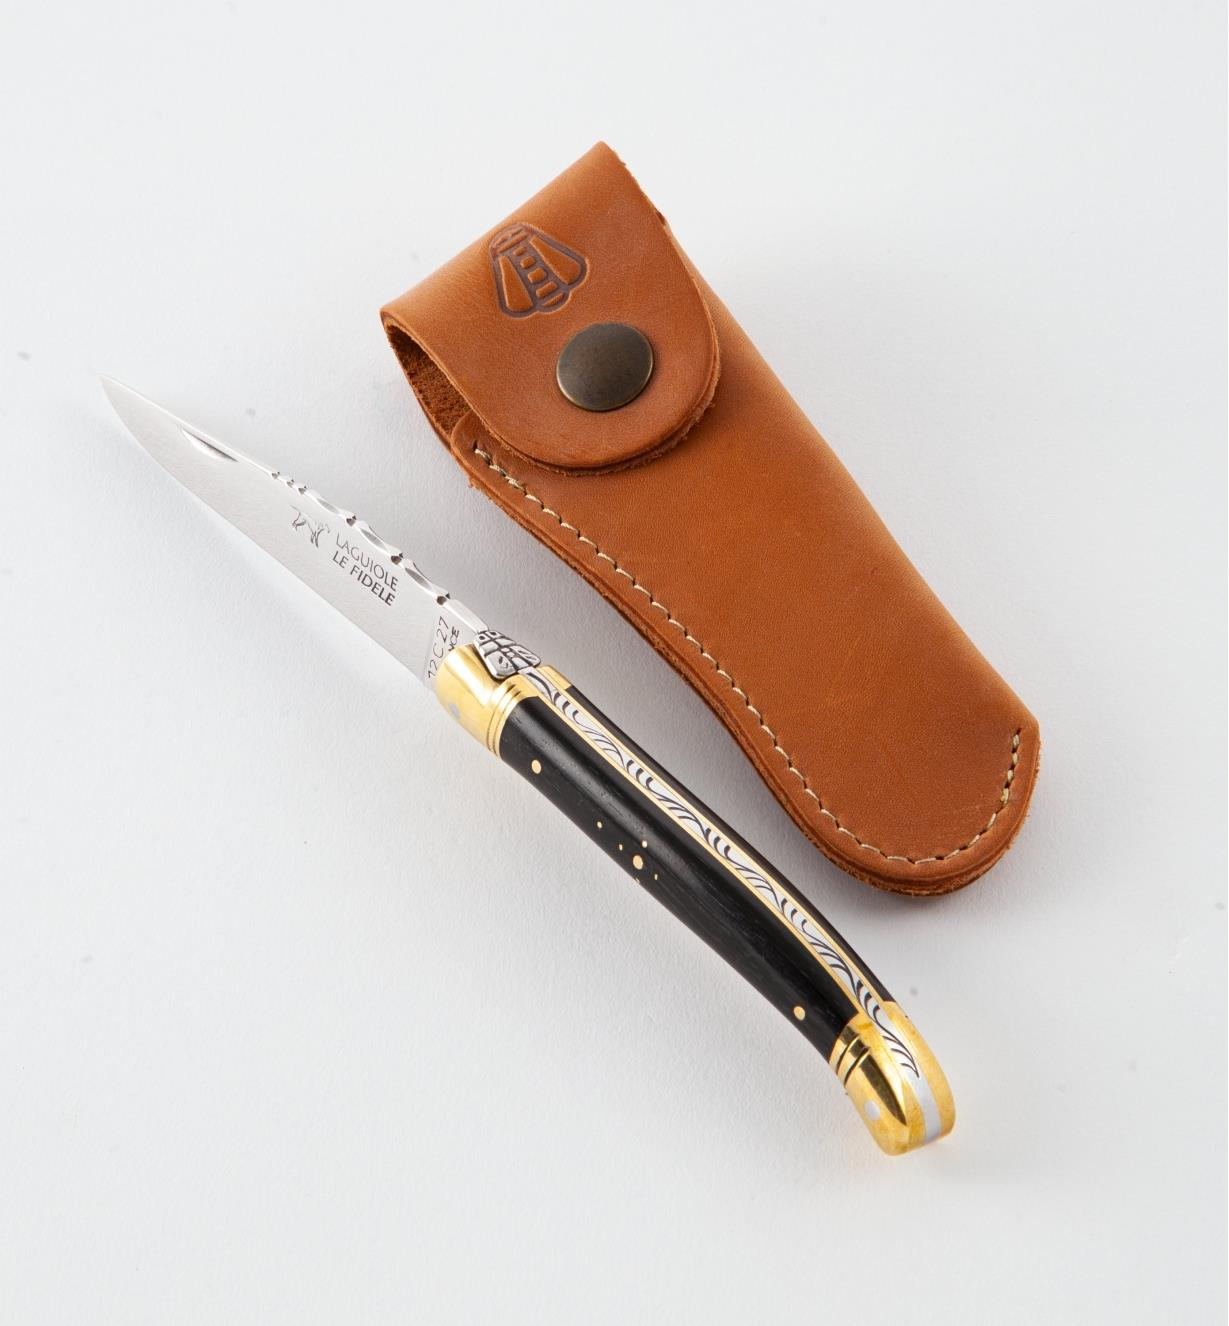 33K0616 - The Laguiole Knife with Leather Case